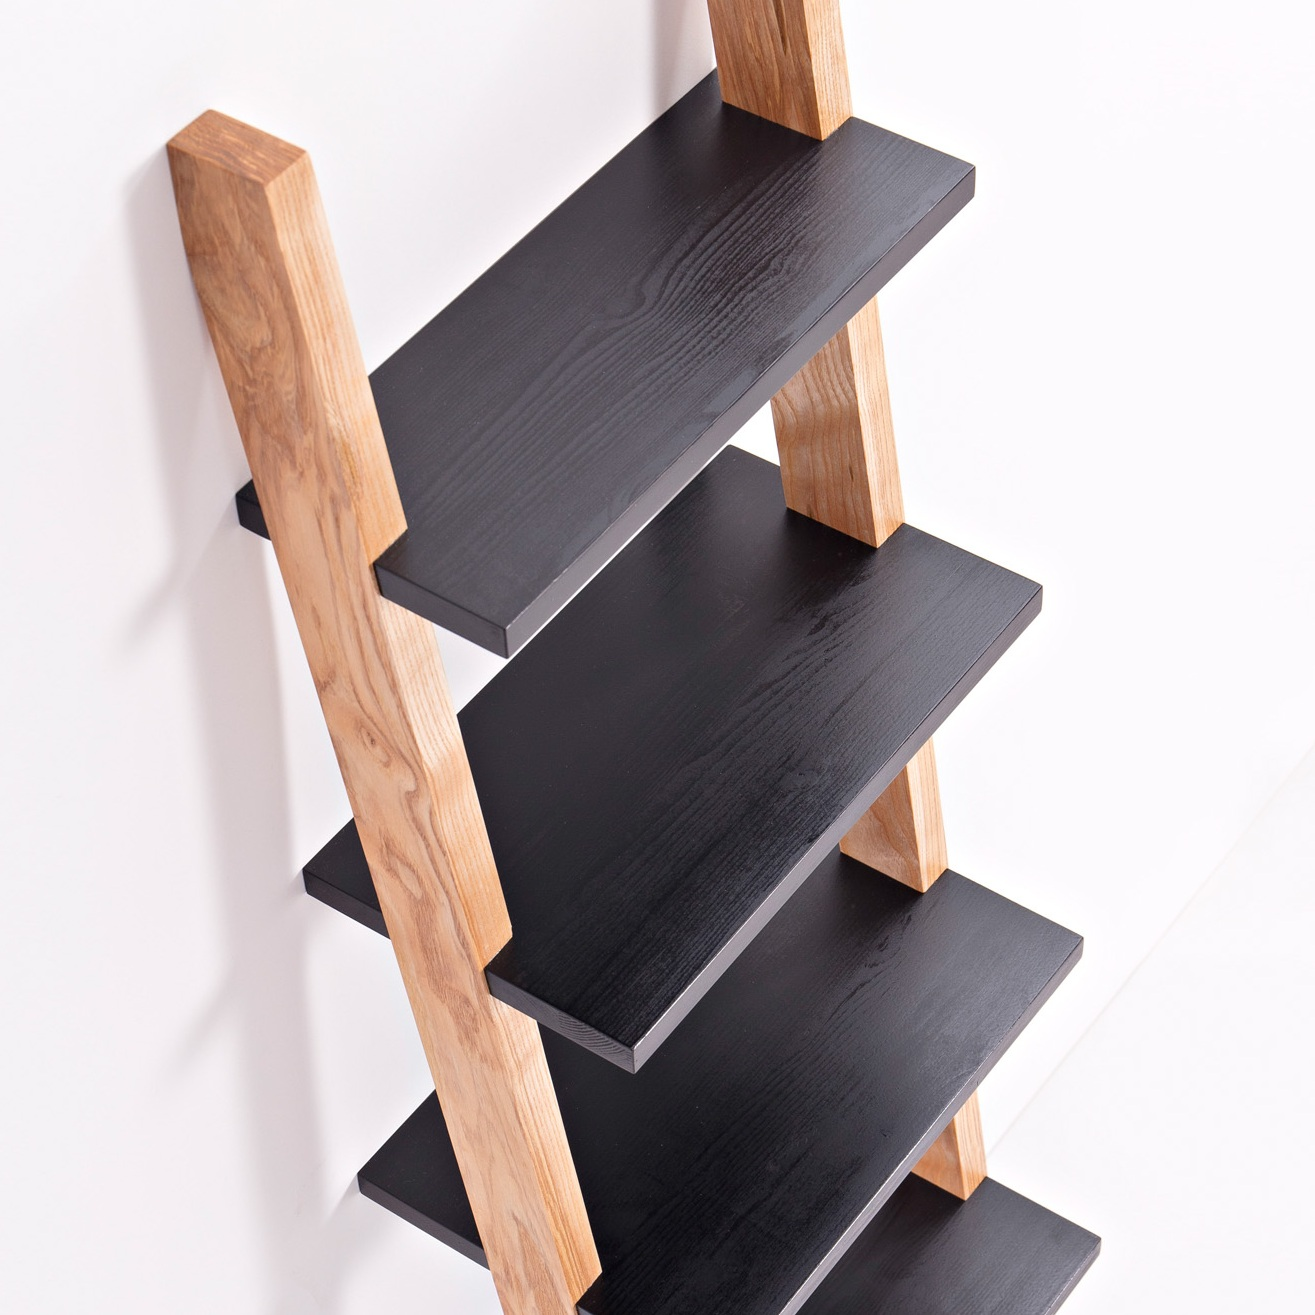 Materials - The shelving is handmade in beautiful wild Irish ash and black waxed Finnish pine. Then finished with a hardwearing, natural, hand rubbed oil.The wild Irish ash trees are sourced from Co. Wicklow and are either windblown or have reached their end of life and need to be taken down. They are unmanaged